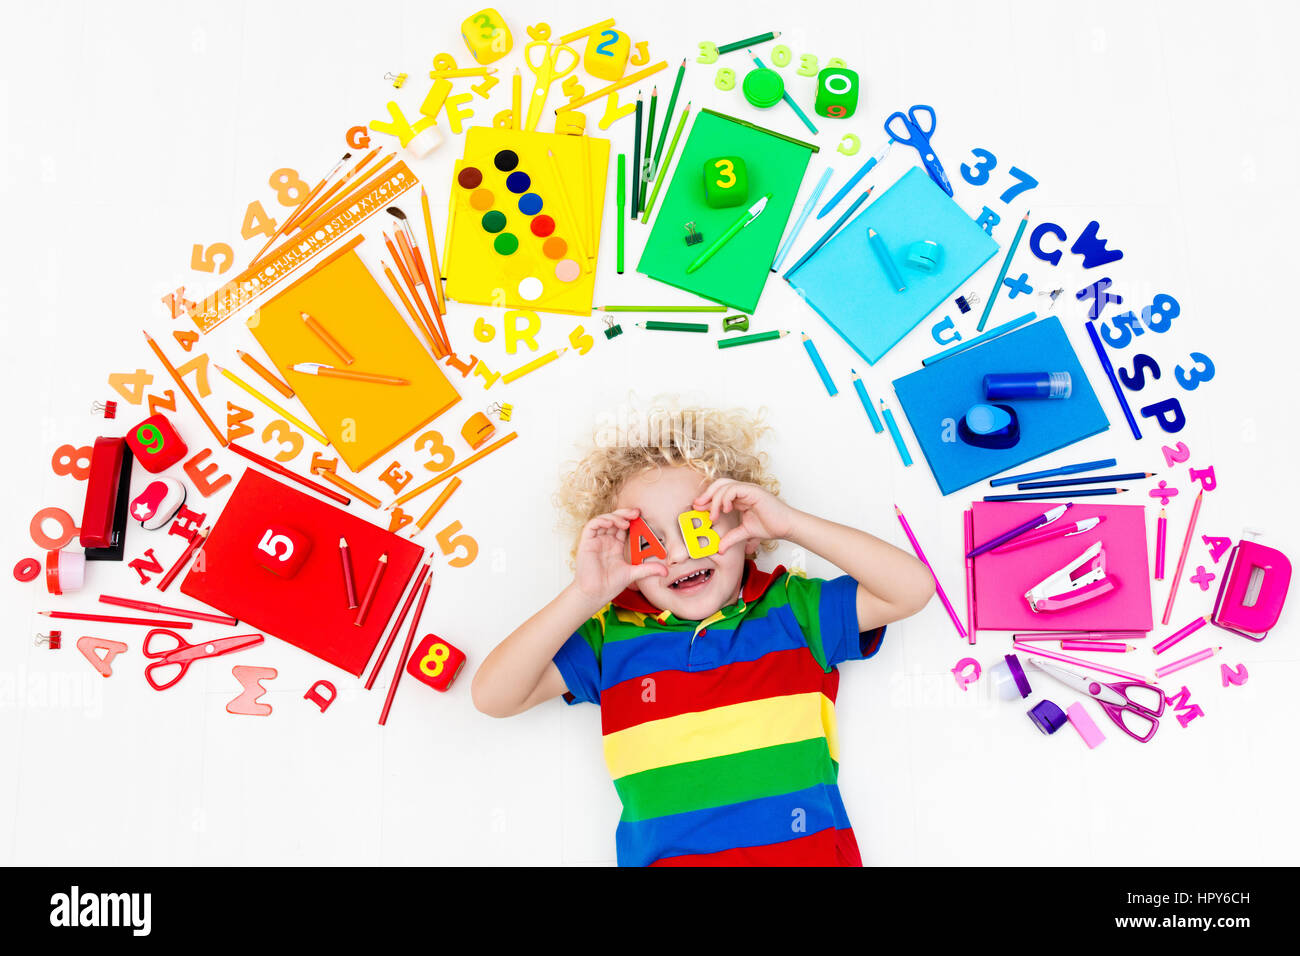 little boy with supplies books drawing and painting tools